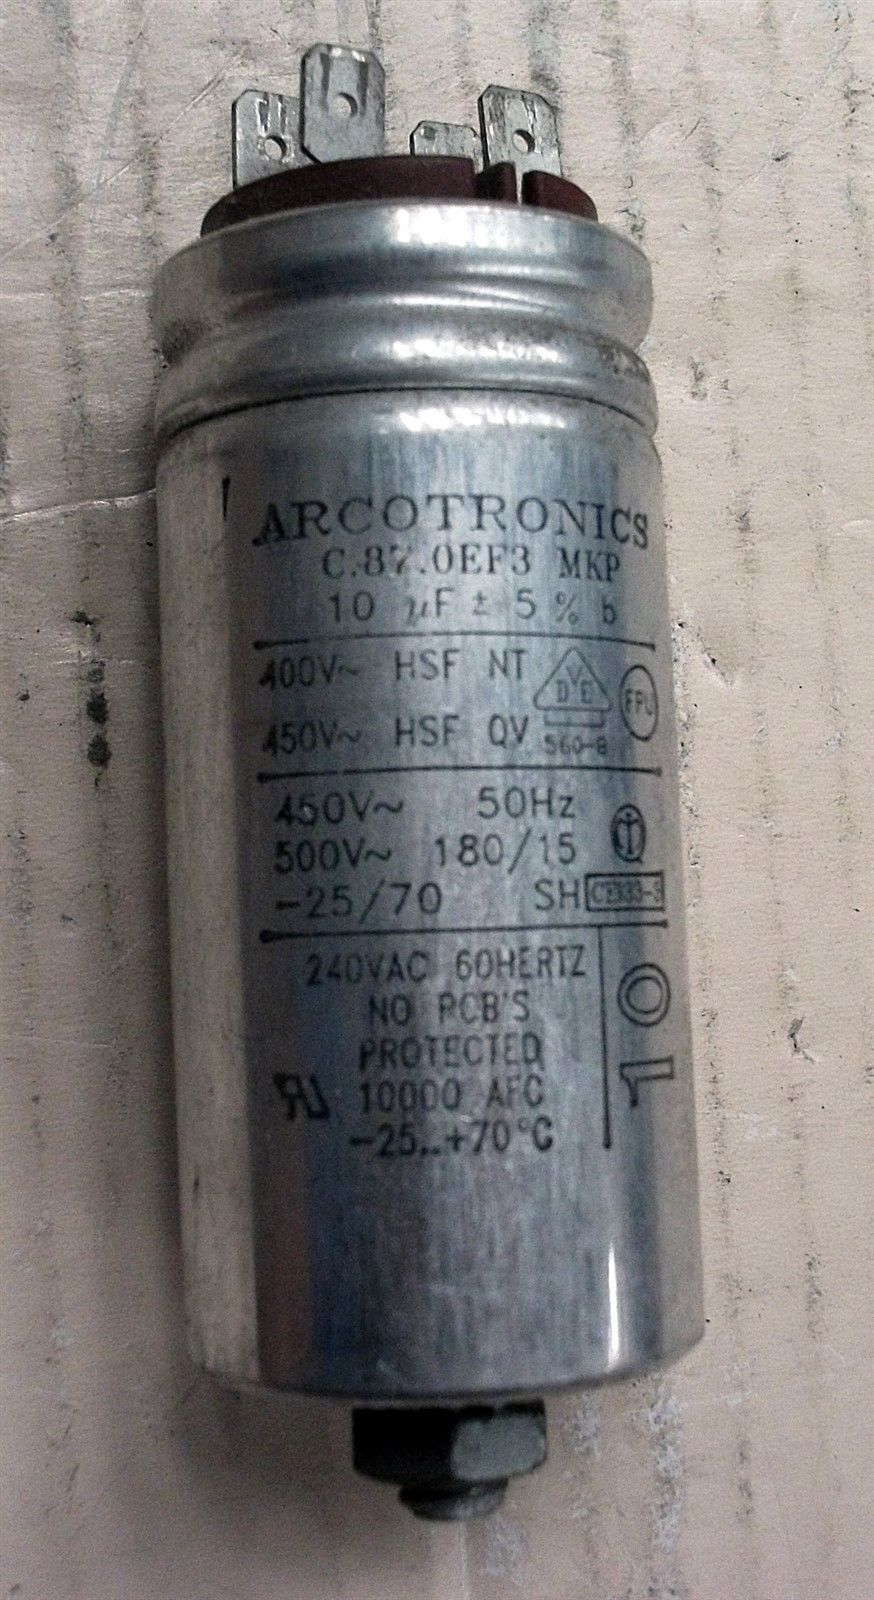 ARCOTRONICS CAPACITOR, MOTOR START/RUN 10uf 400v 450v used